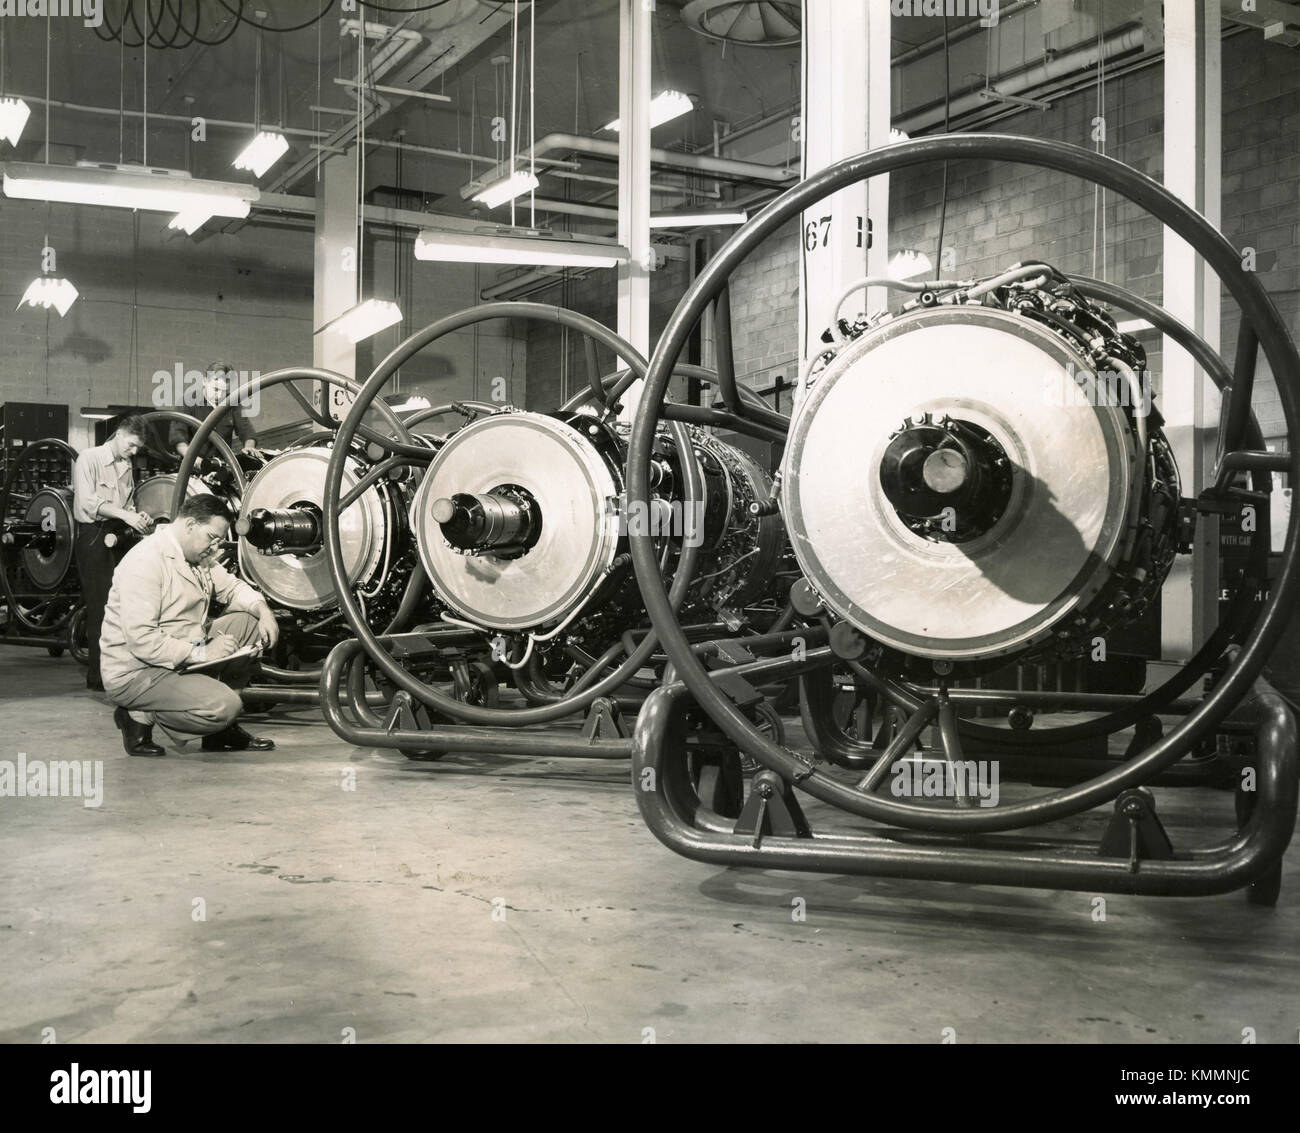 Production of Wright J65 axial-flow turbojet engines Curtiss-Wright, USA 1952 - Stock Image